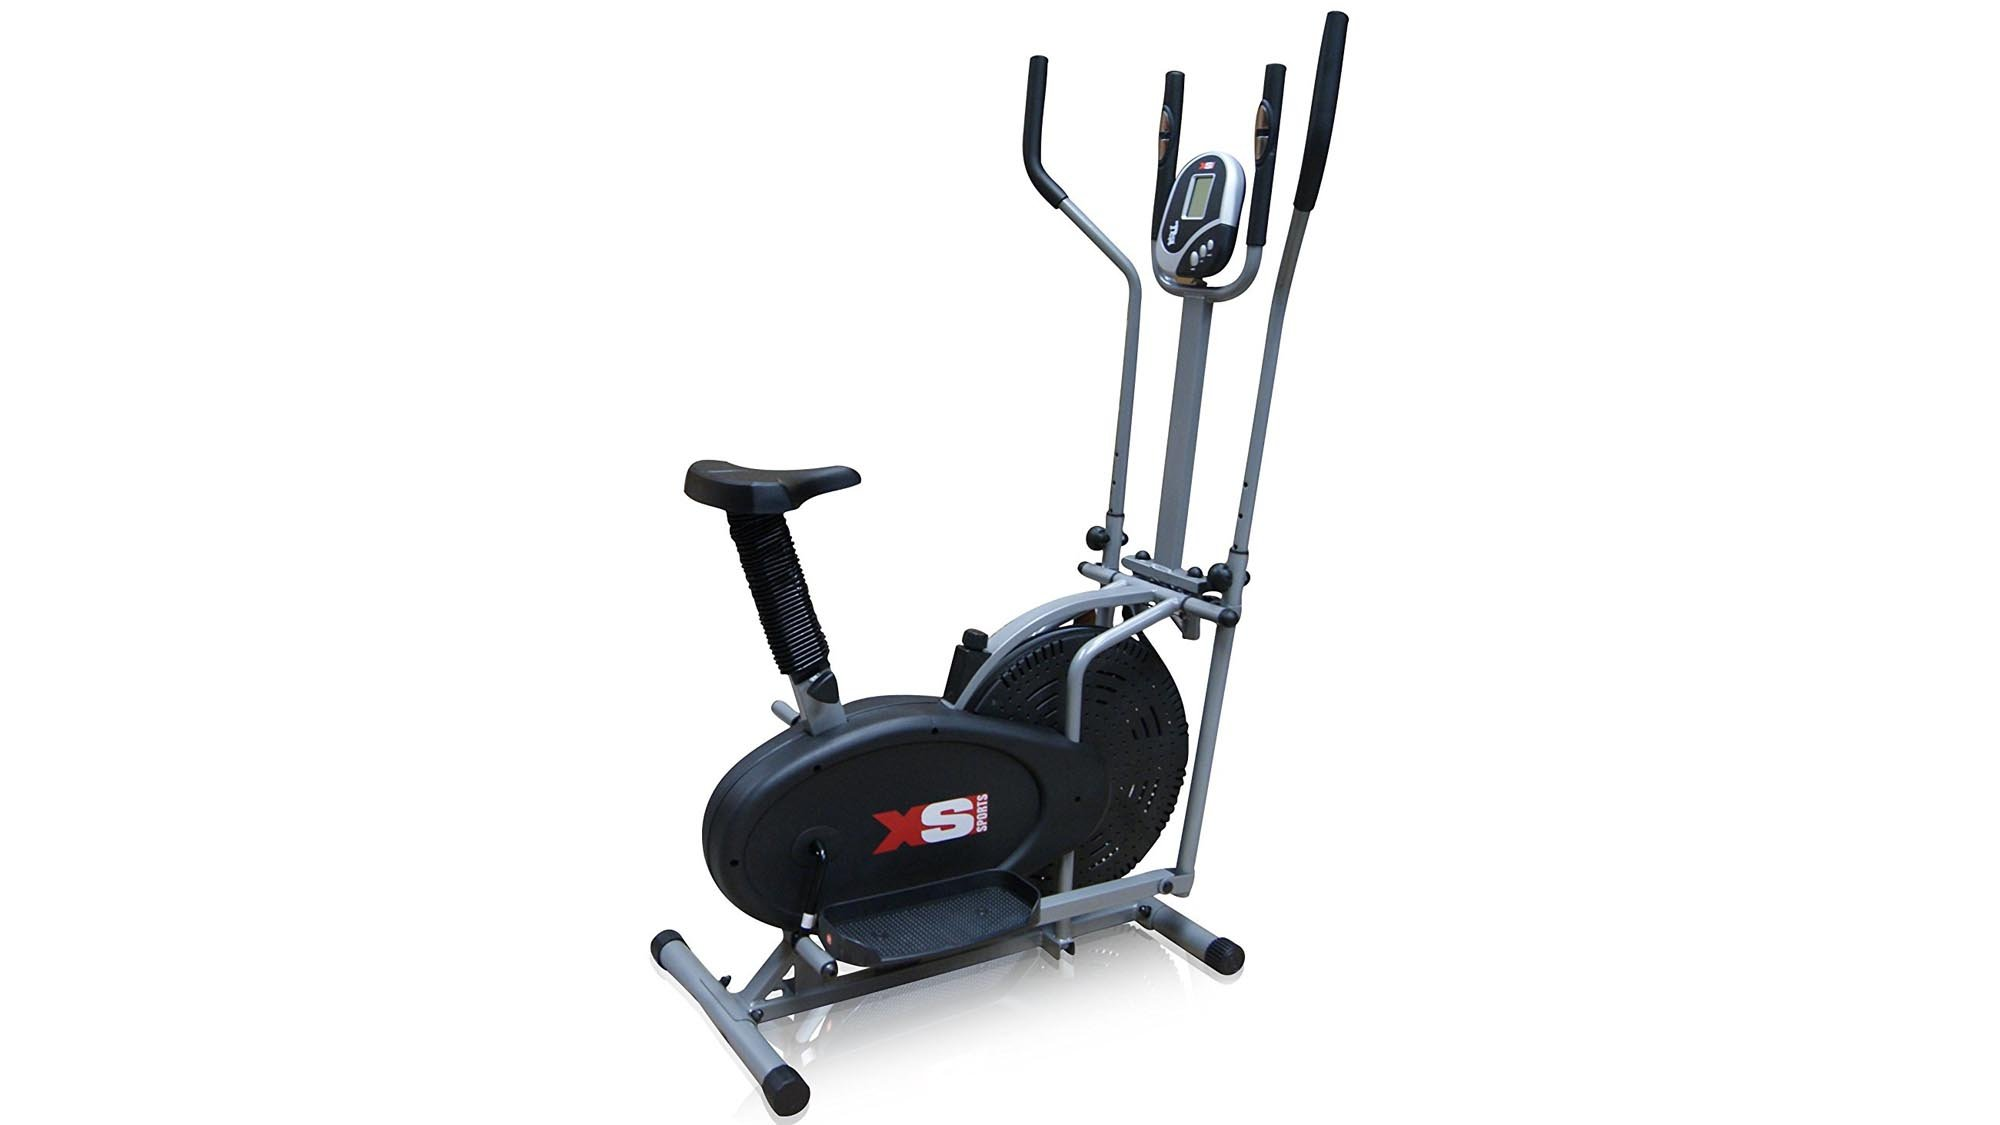 f13c16e64 Best cross trainers 2019  Get fit with the best elliptical trainers ...